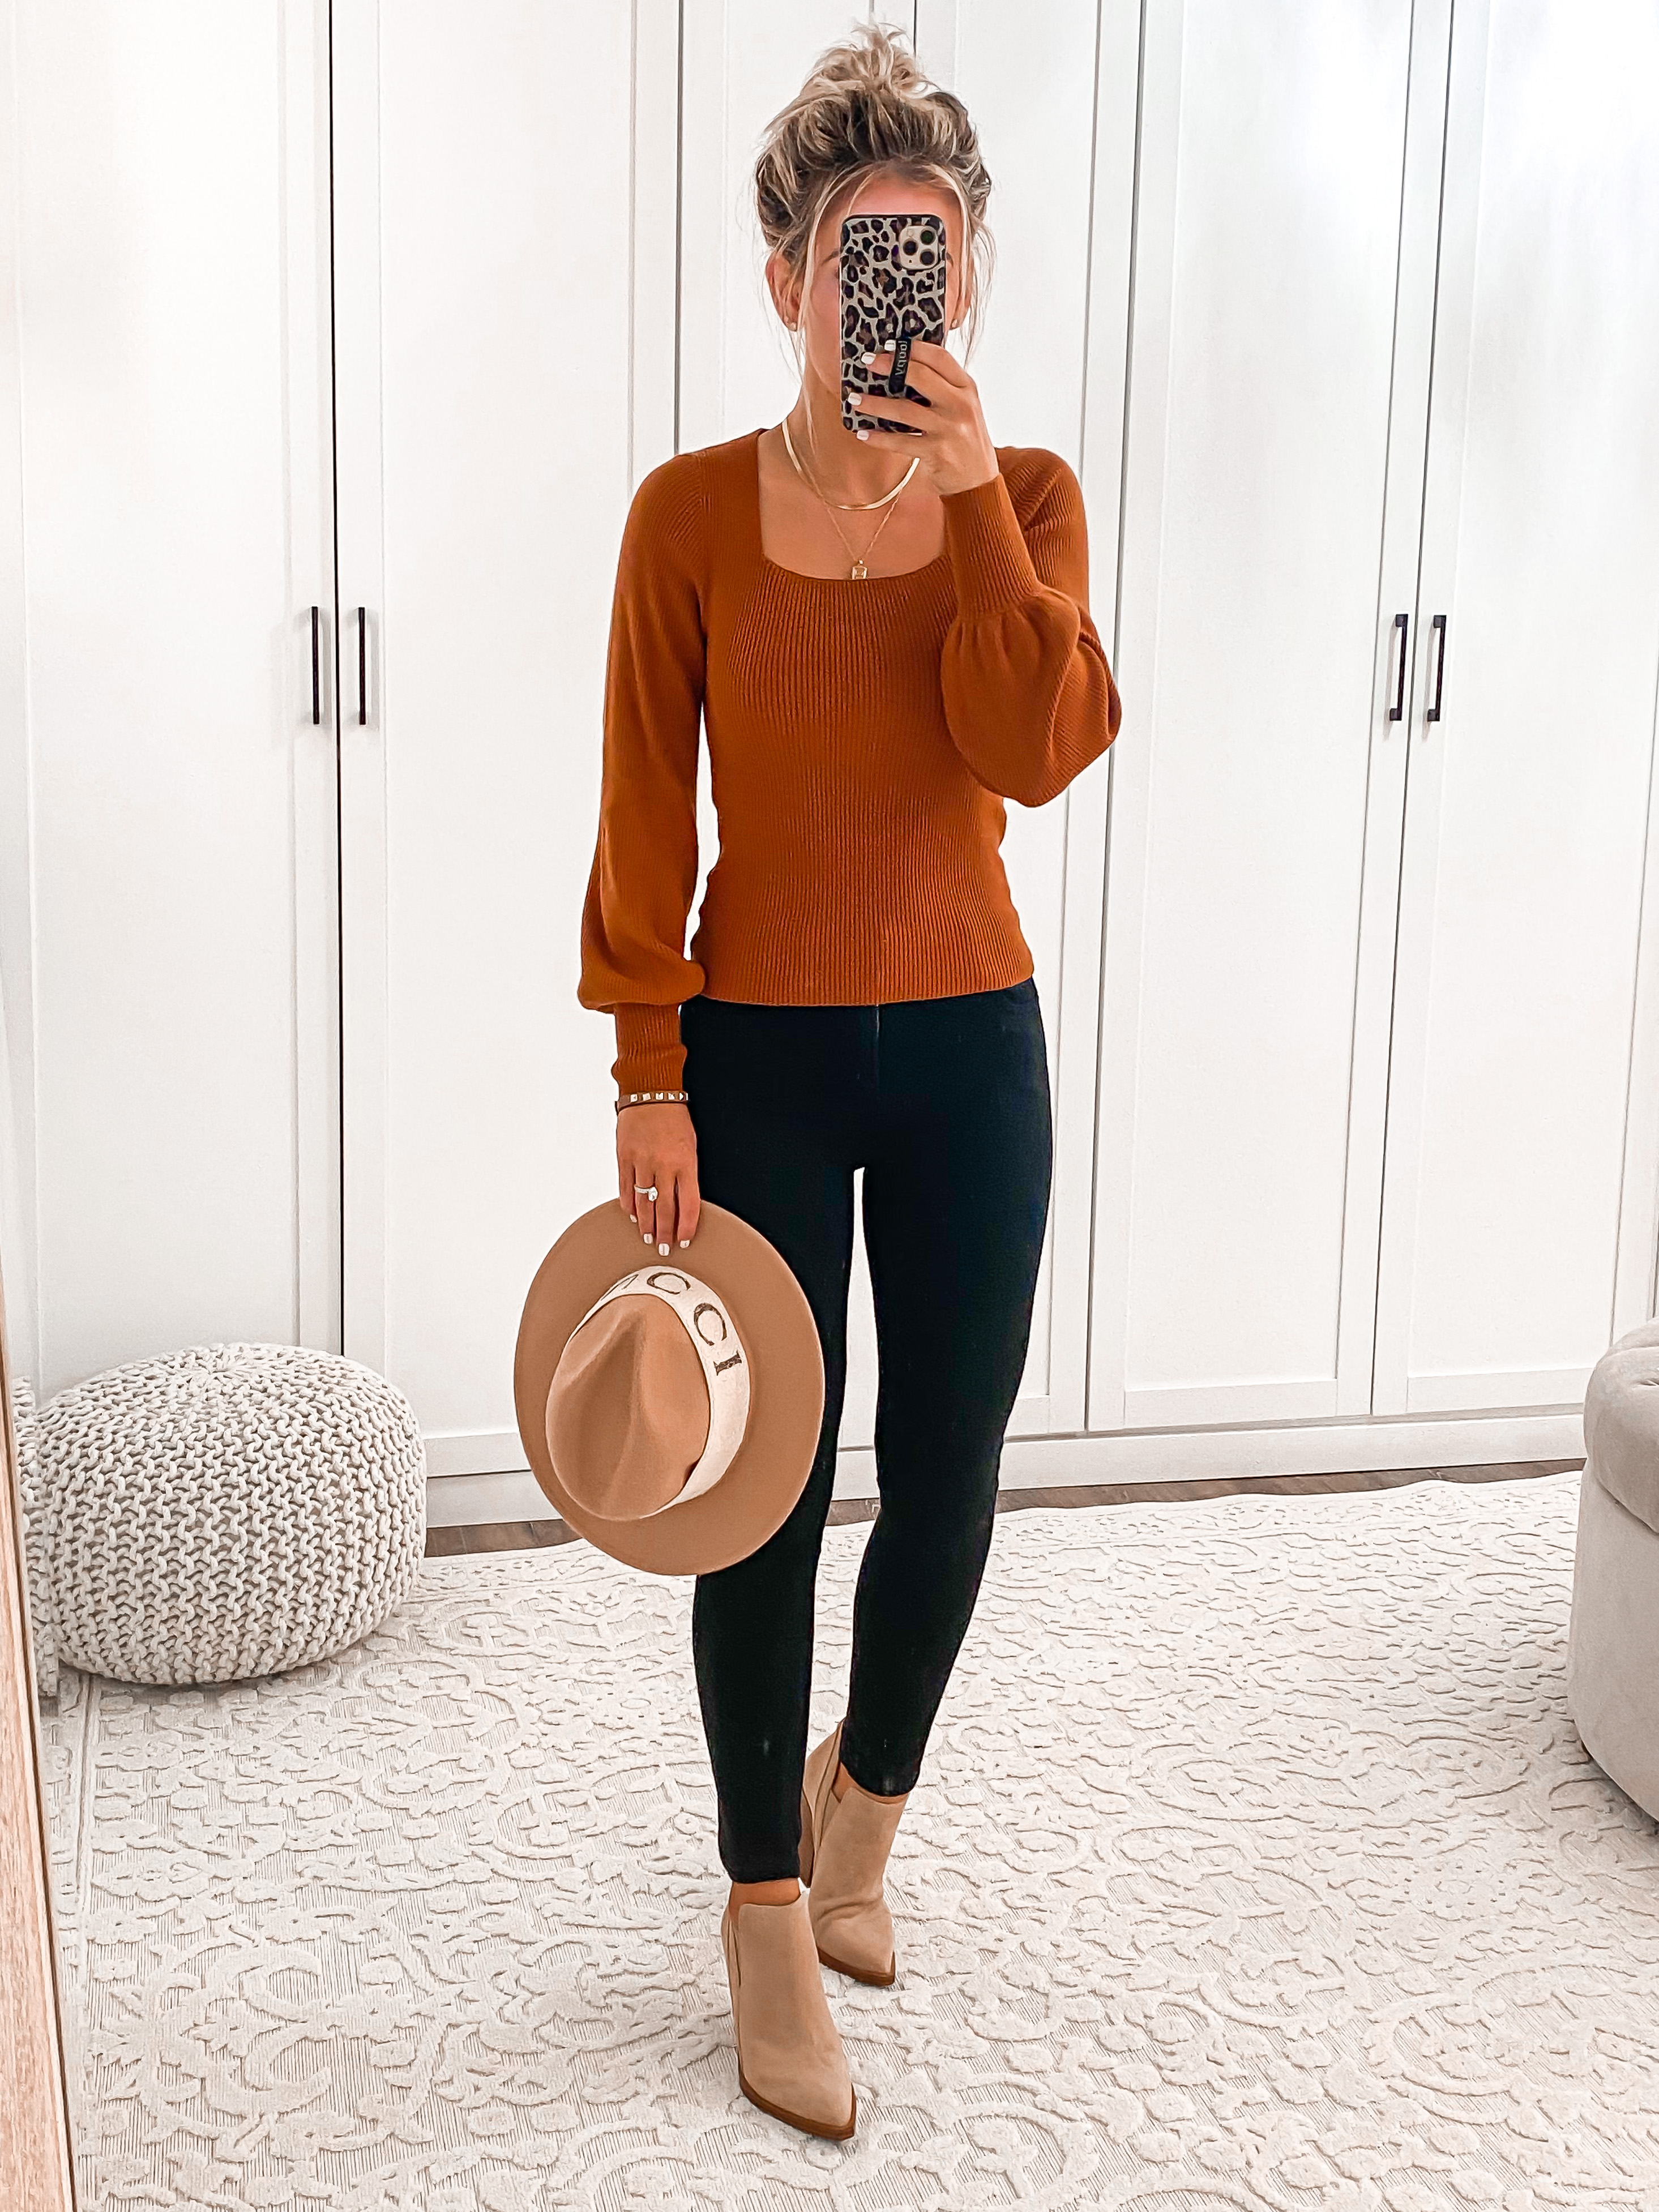 Nordstrom Anniversary Sale 2020 Nsale Laura Beverlin Fall outfit ideas1